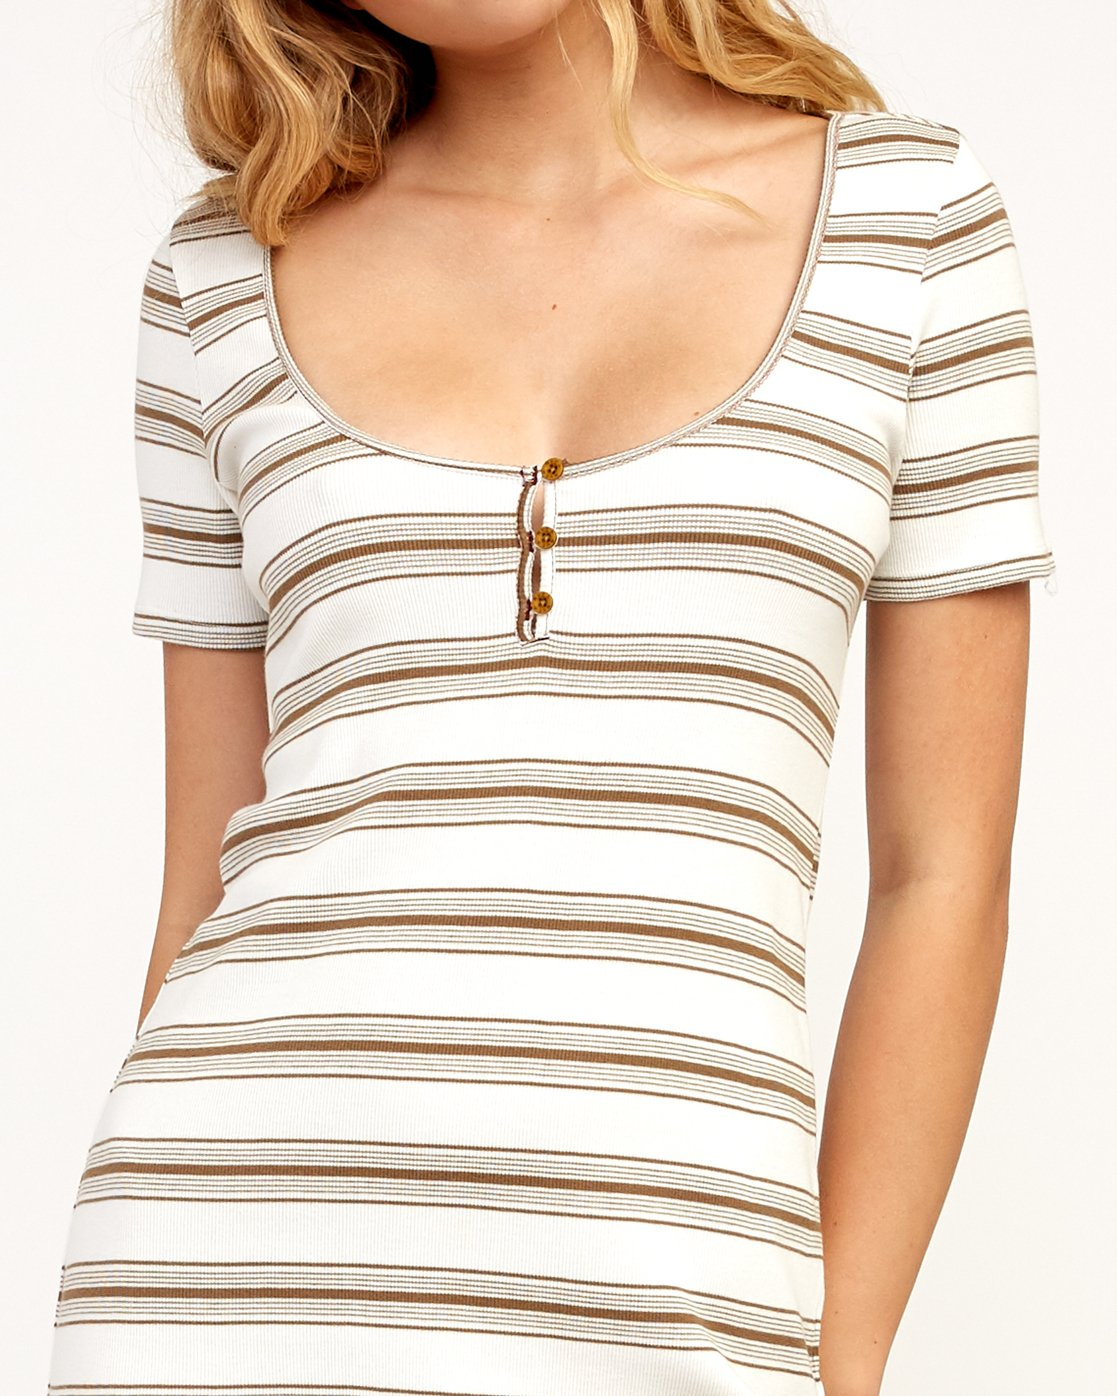 4 Vamp Striped Knit Dress Beige WD04TRVA RVCA